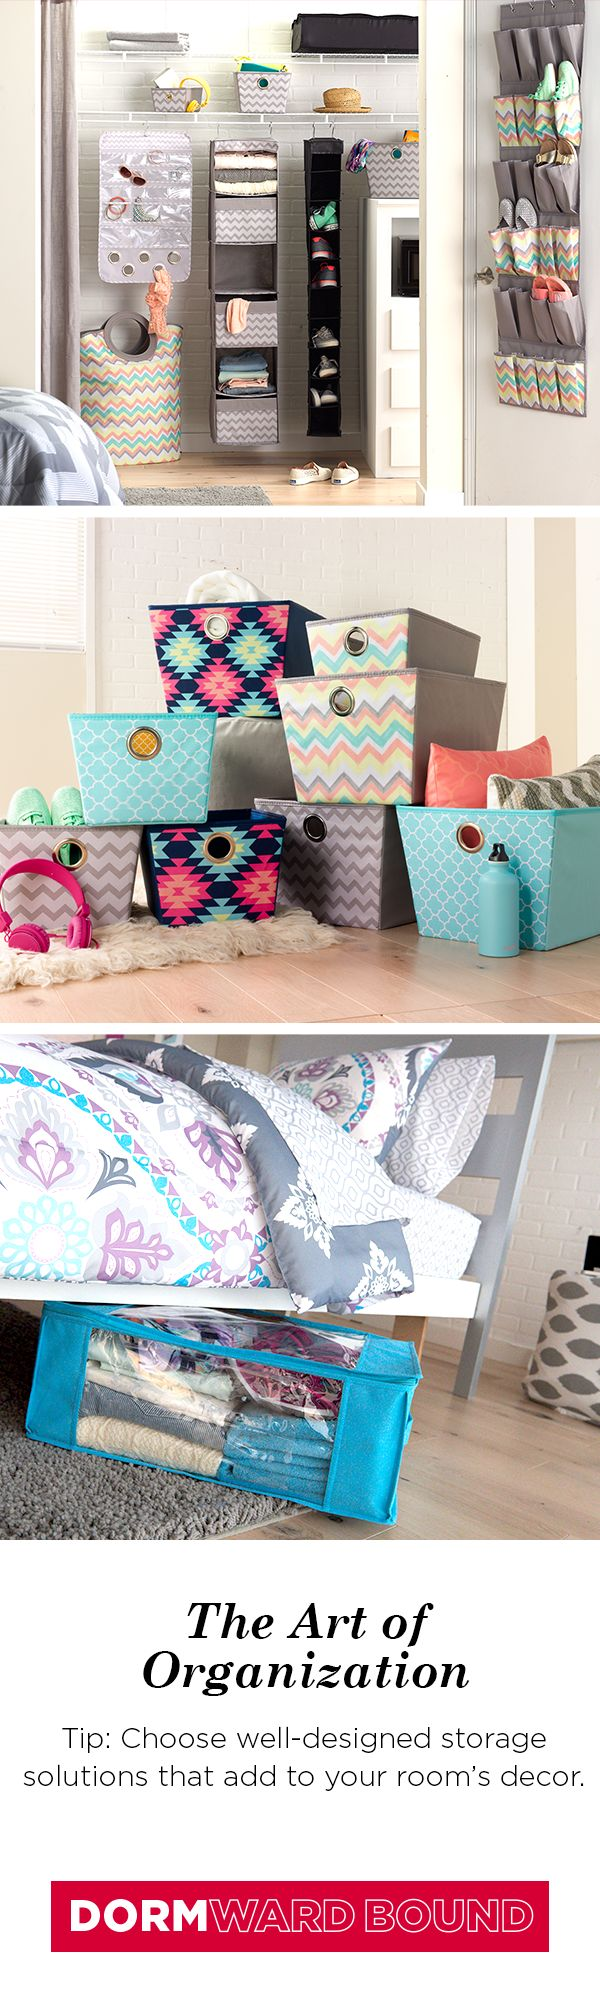 Newsflash! Dorm rooms are not large. Be prepared, but be yourself with storage and organization solutions that don't cramp your style. You can't shove everything in the closet or under the bed, so look for colorful totes, bins and tubs in stylish patterns that you can leave out in the open.